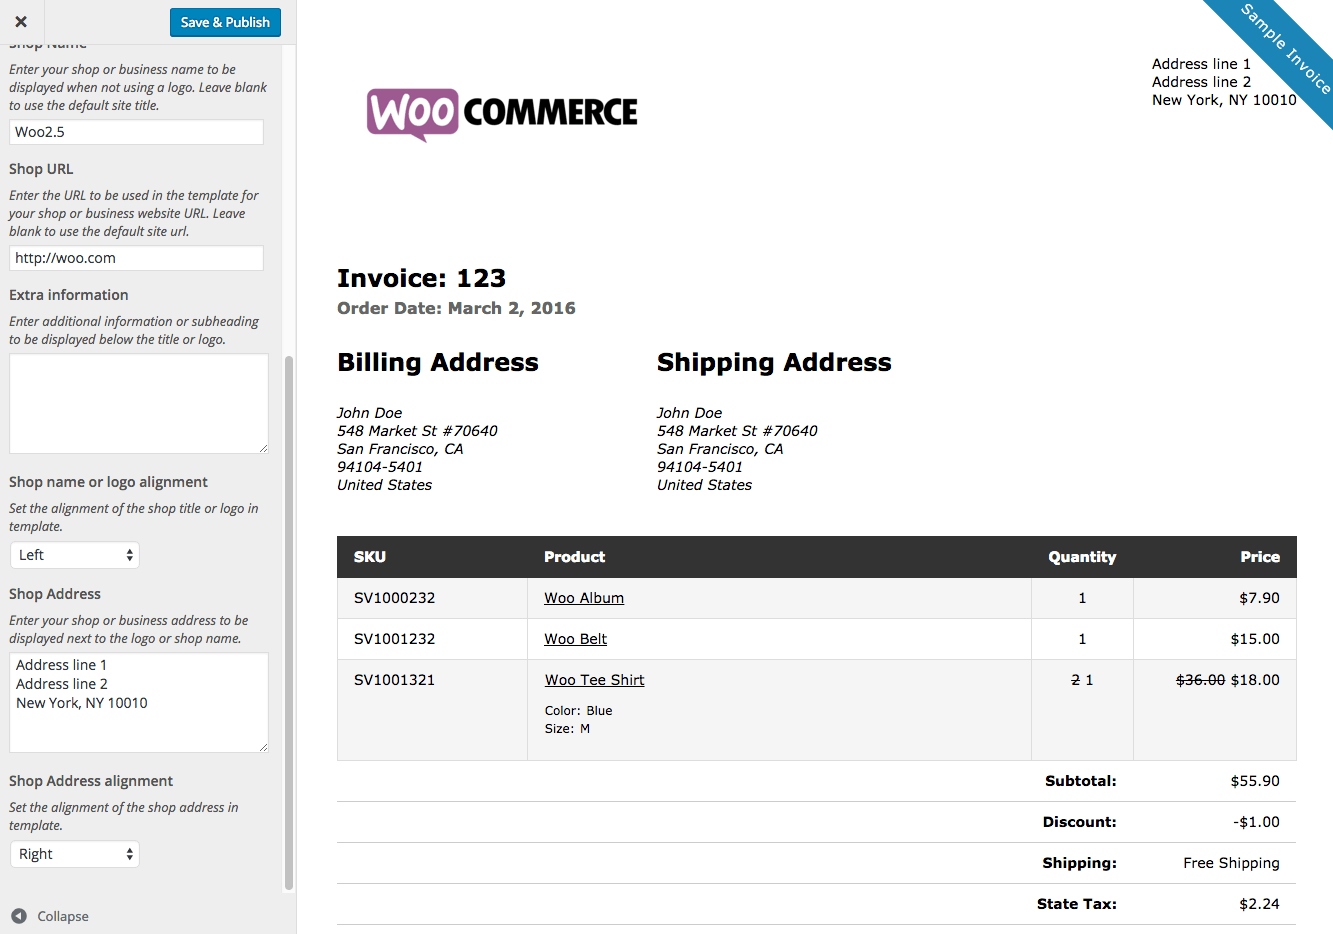 Aninsaneportraitus  Winsome Print Invoices Amp Packing Lists  Woocommerce With Hot Woocommerce Print Invoices  Packing Lists Customizer With Enchanting Kbb Invoice Price Also Freelance Design Invoice Template In Addition Designer Invoice Template And Consignment Invoice Template As Well As Invoice Past Due Additionally Invoicing Systems From Woocommercecom With Aninsaneportraitus  Hot Print Invoices Amp Packing Lists  Woocommerce With Enchanting Woocommerce Print Invoices  Packing Lists Customizer And Winsome Kbb Invoice Price Also Freelance Design Invoice Template In Addition Designer Invoice Template From Woocommercecom